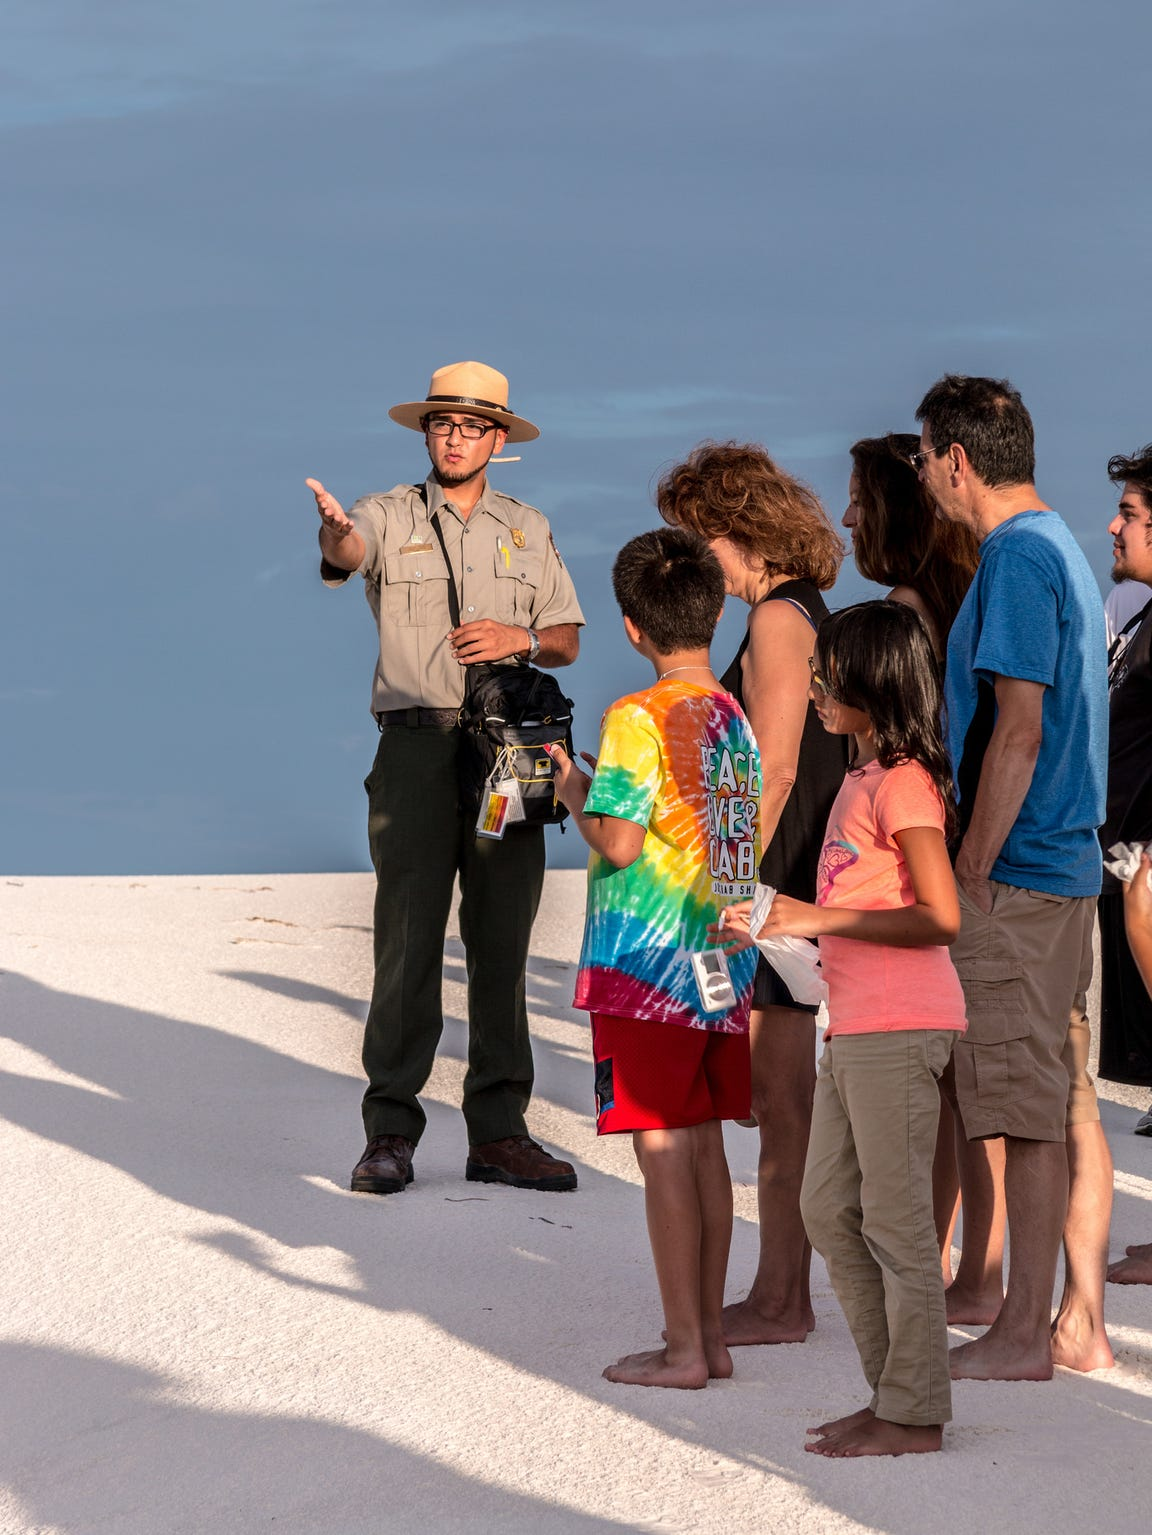 Several ranger-guided programs and tours are offered